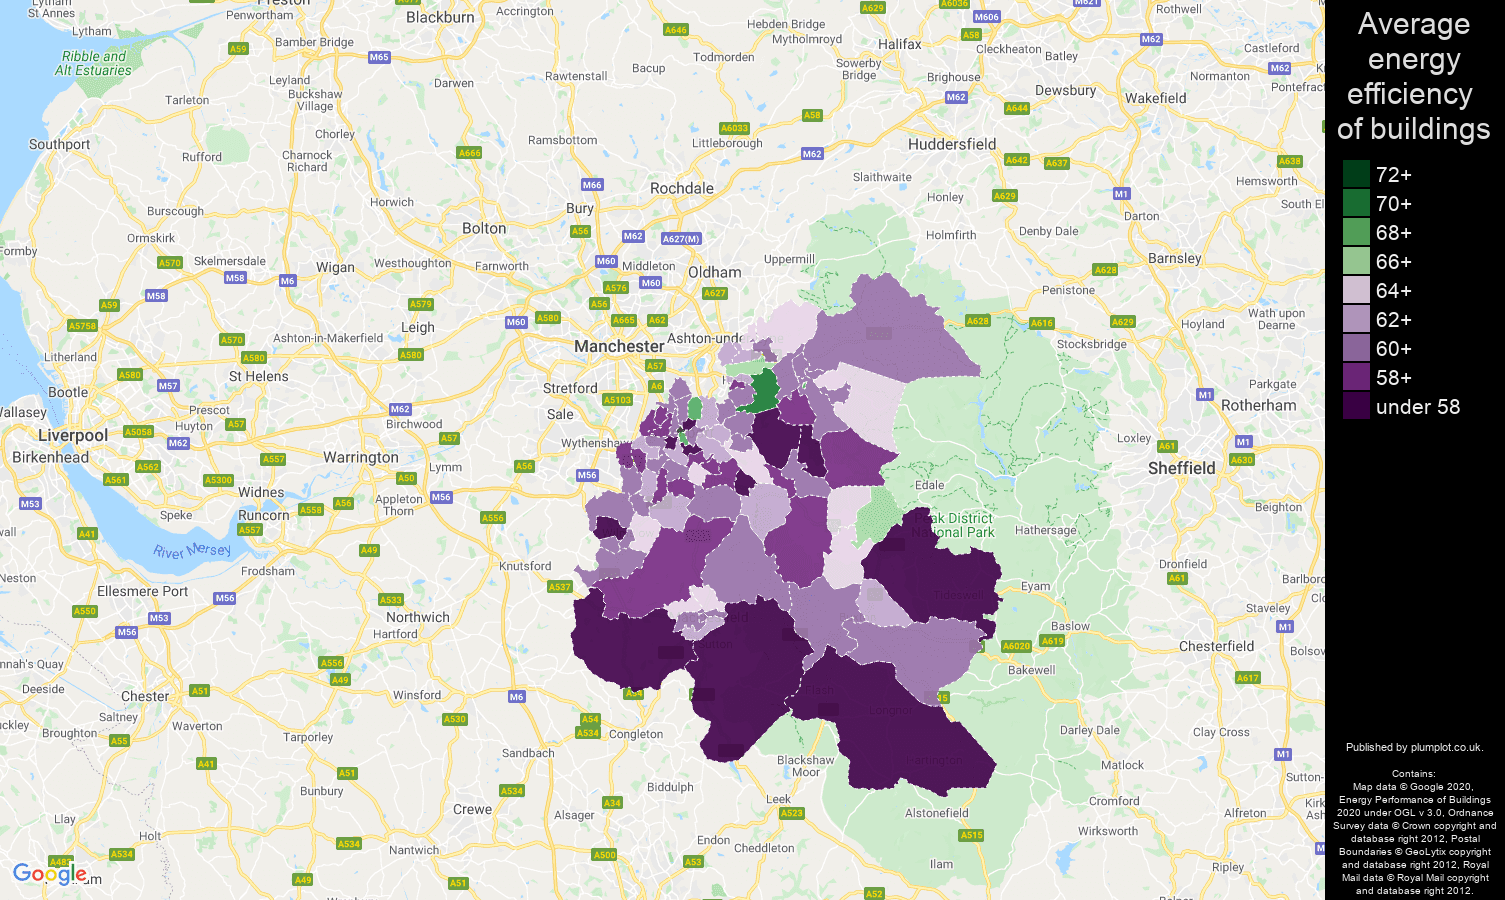 Stockport map of energy efficiency of houses